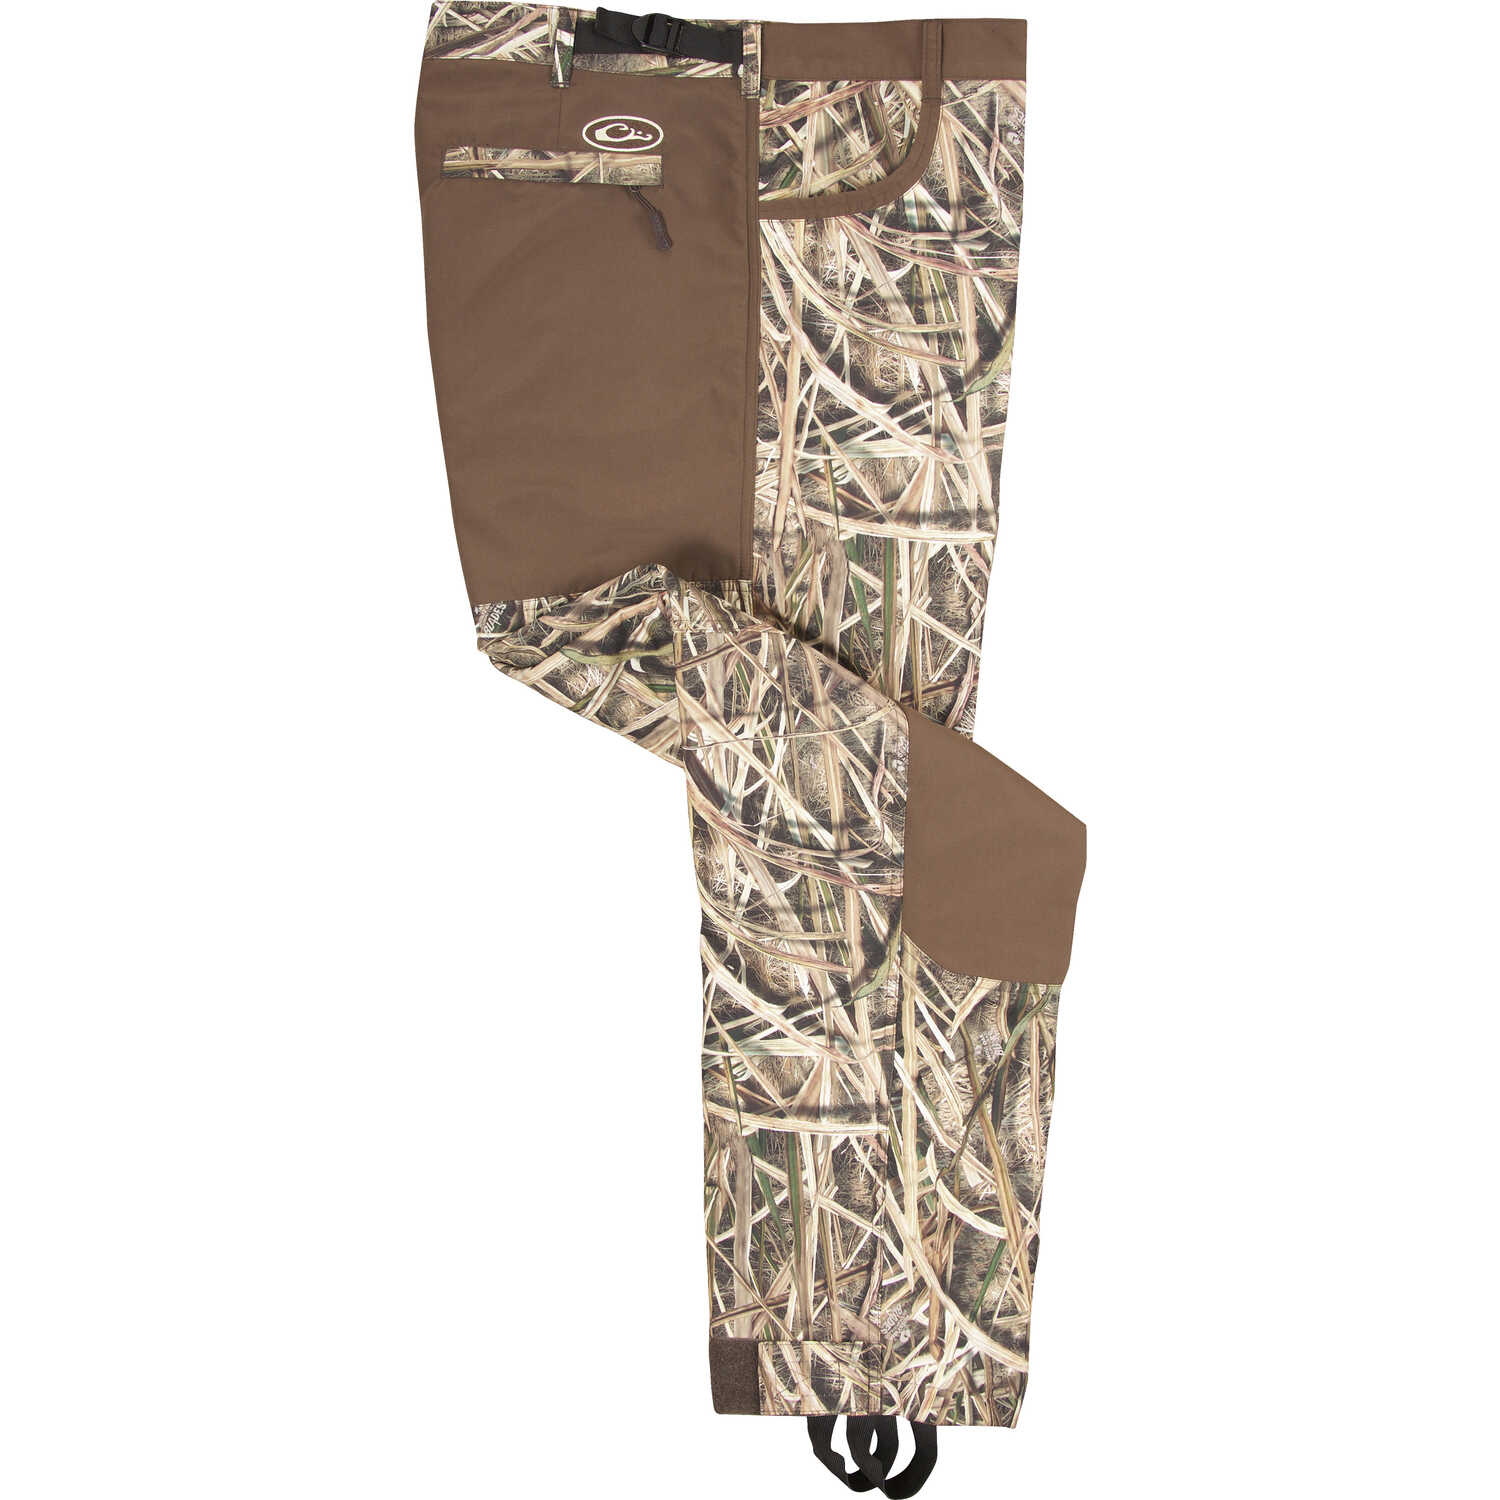 Drake  MST  Men's  Under-Wader Pants  S  Camouflage